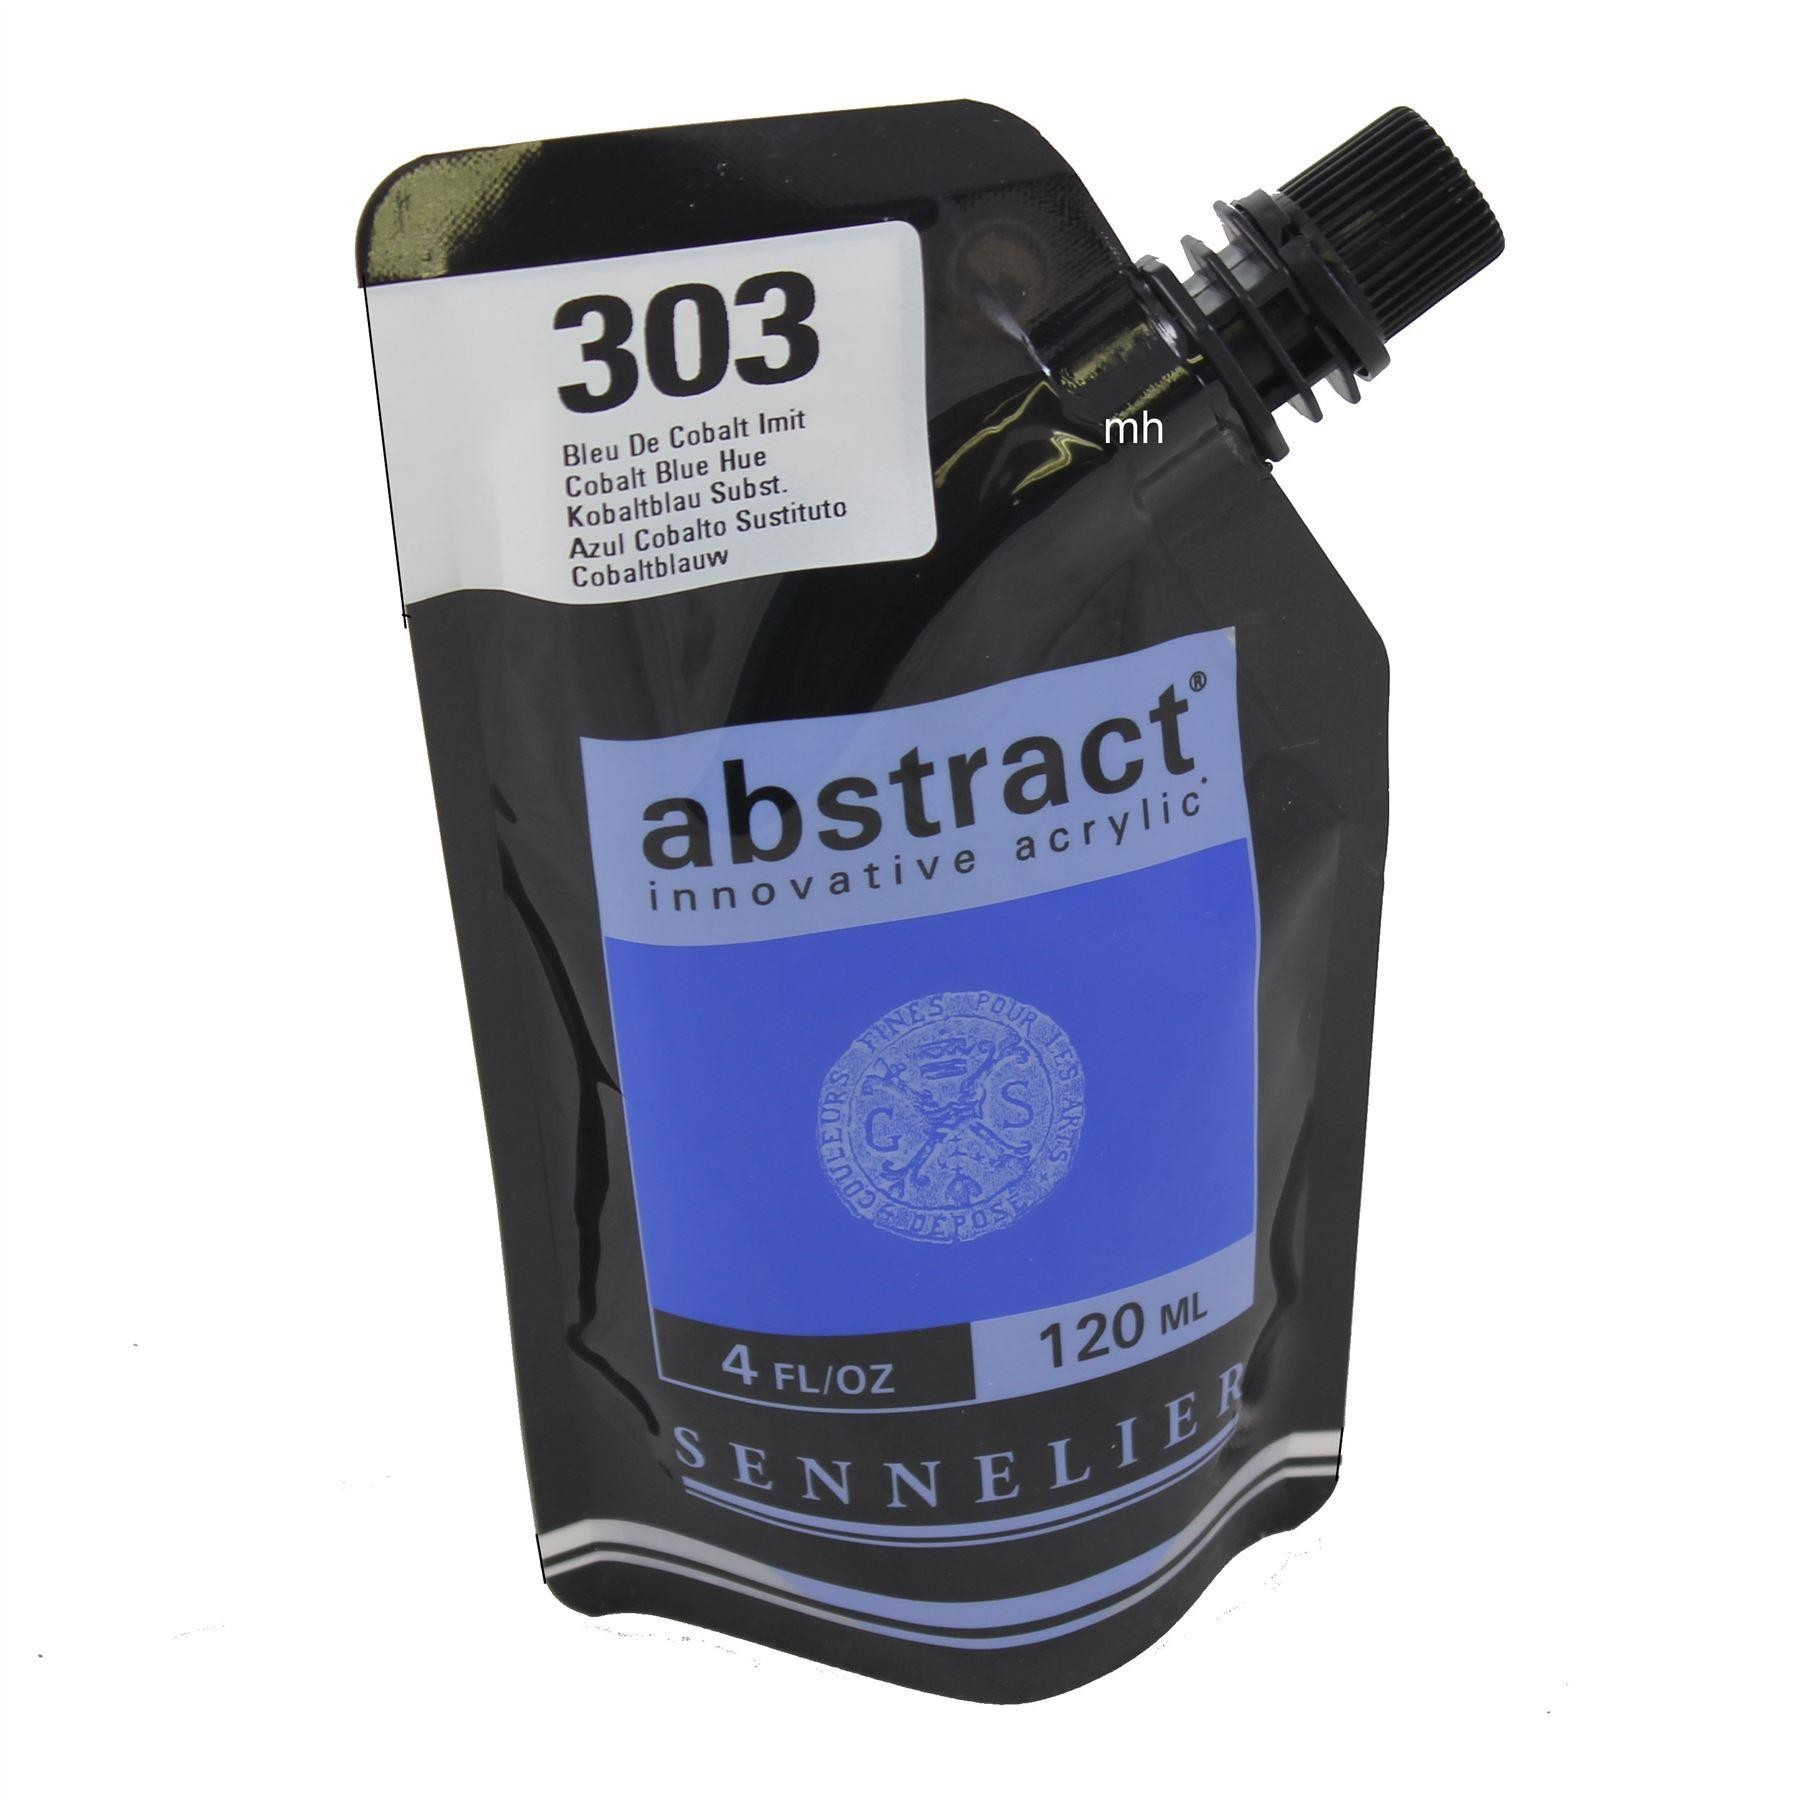 Sennelier Abstract innovative acrylic paint 120ml ,4oz, assorted colours